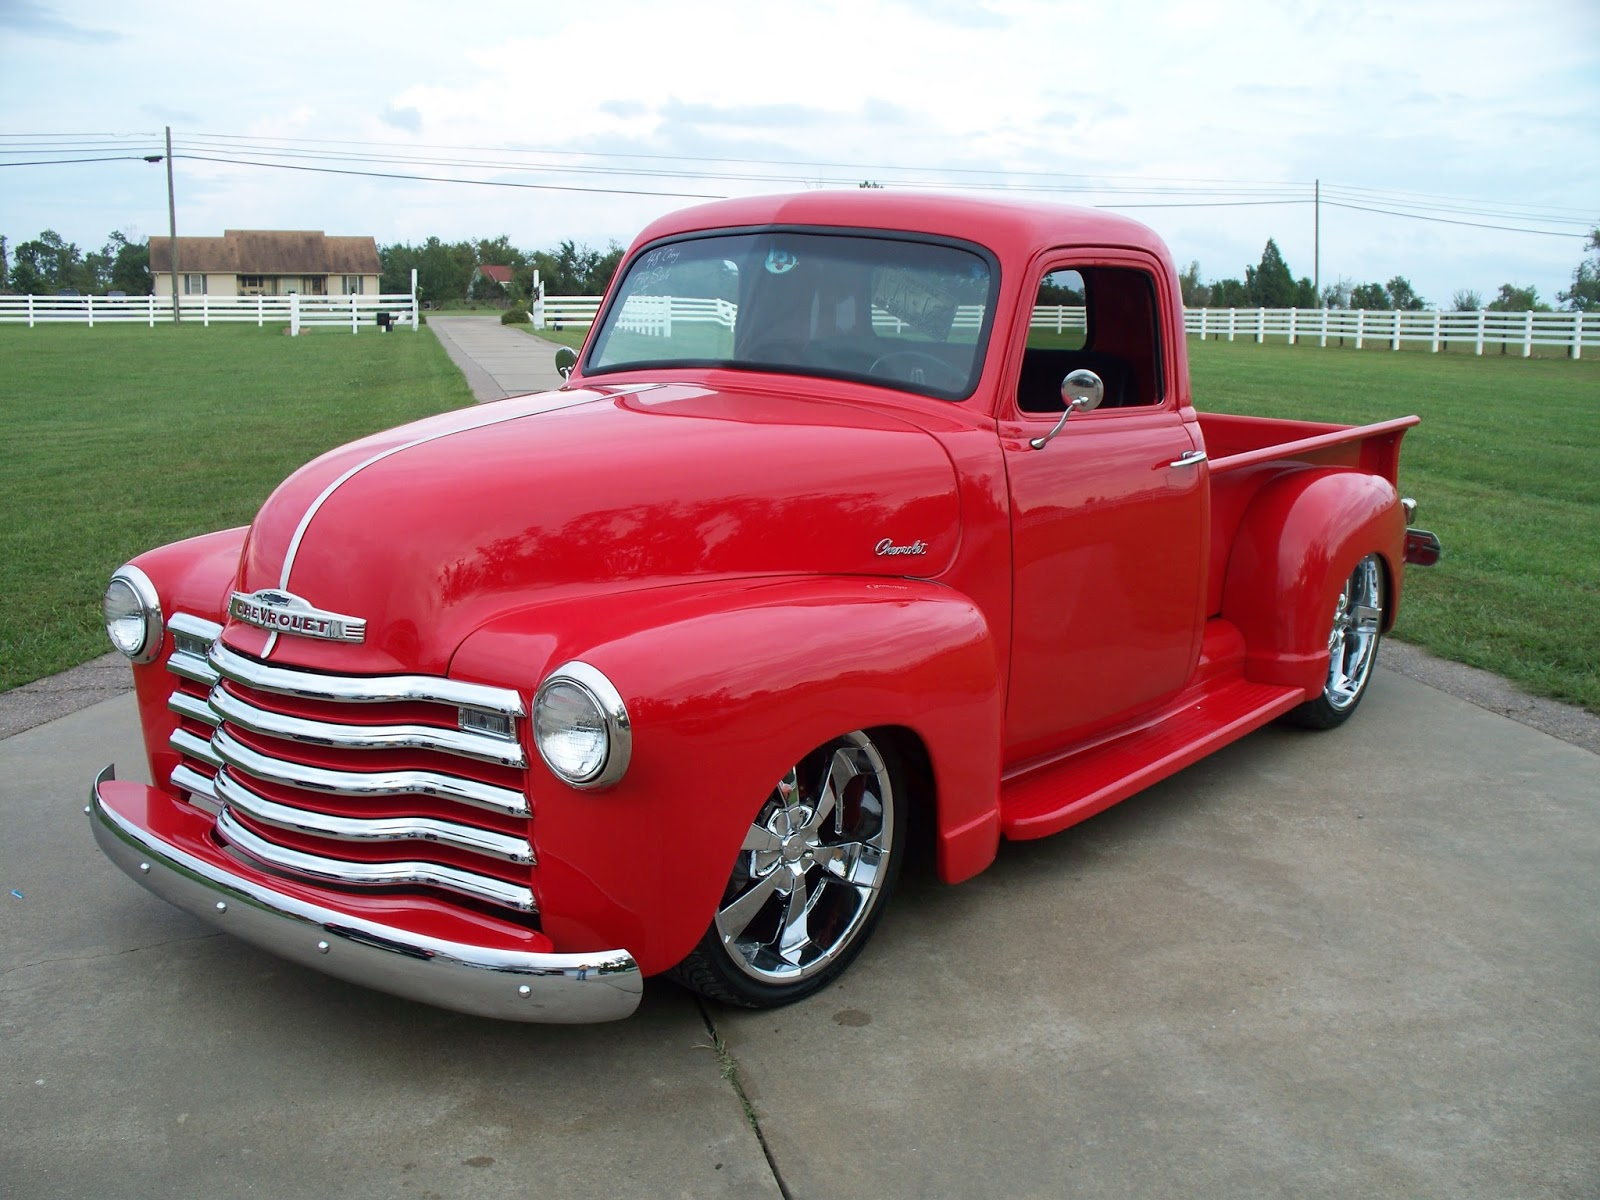 Red 1948 Chevy Truck Hot Rod Styles - Chevy Trucks